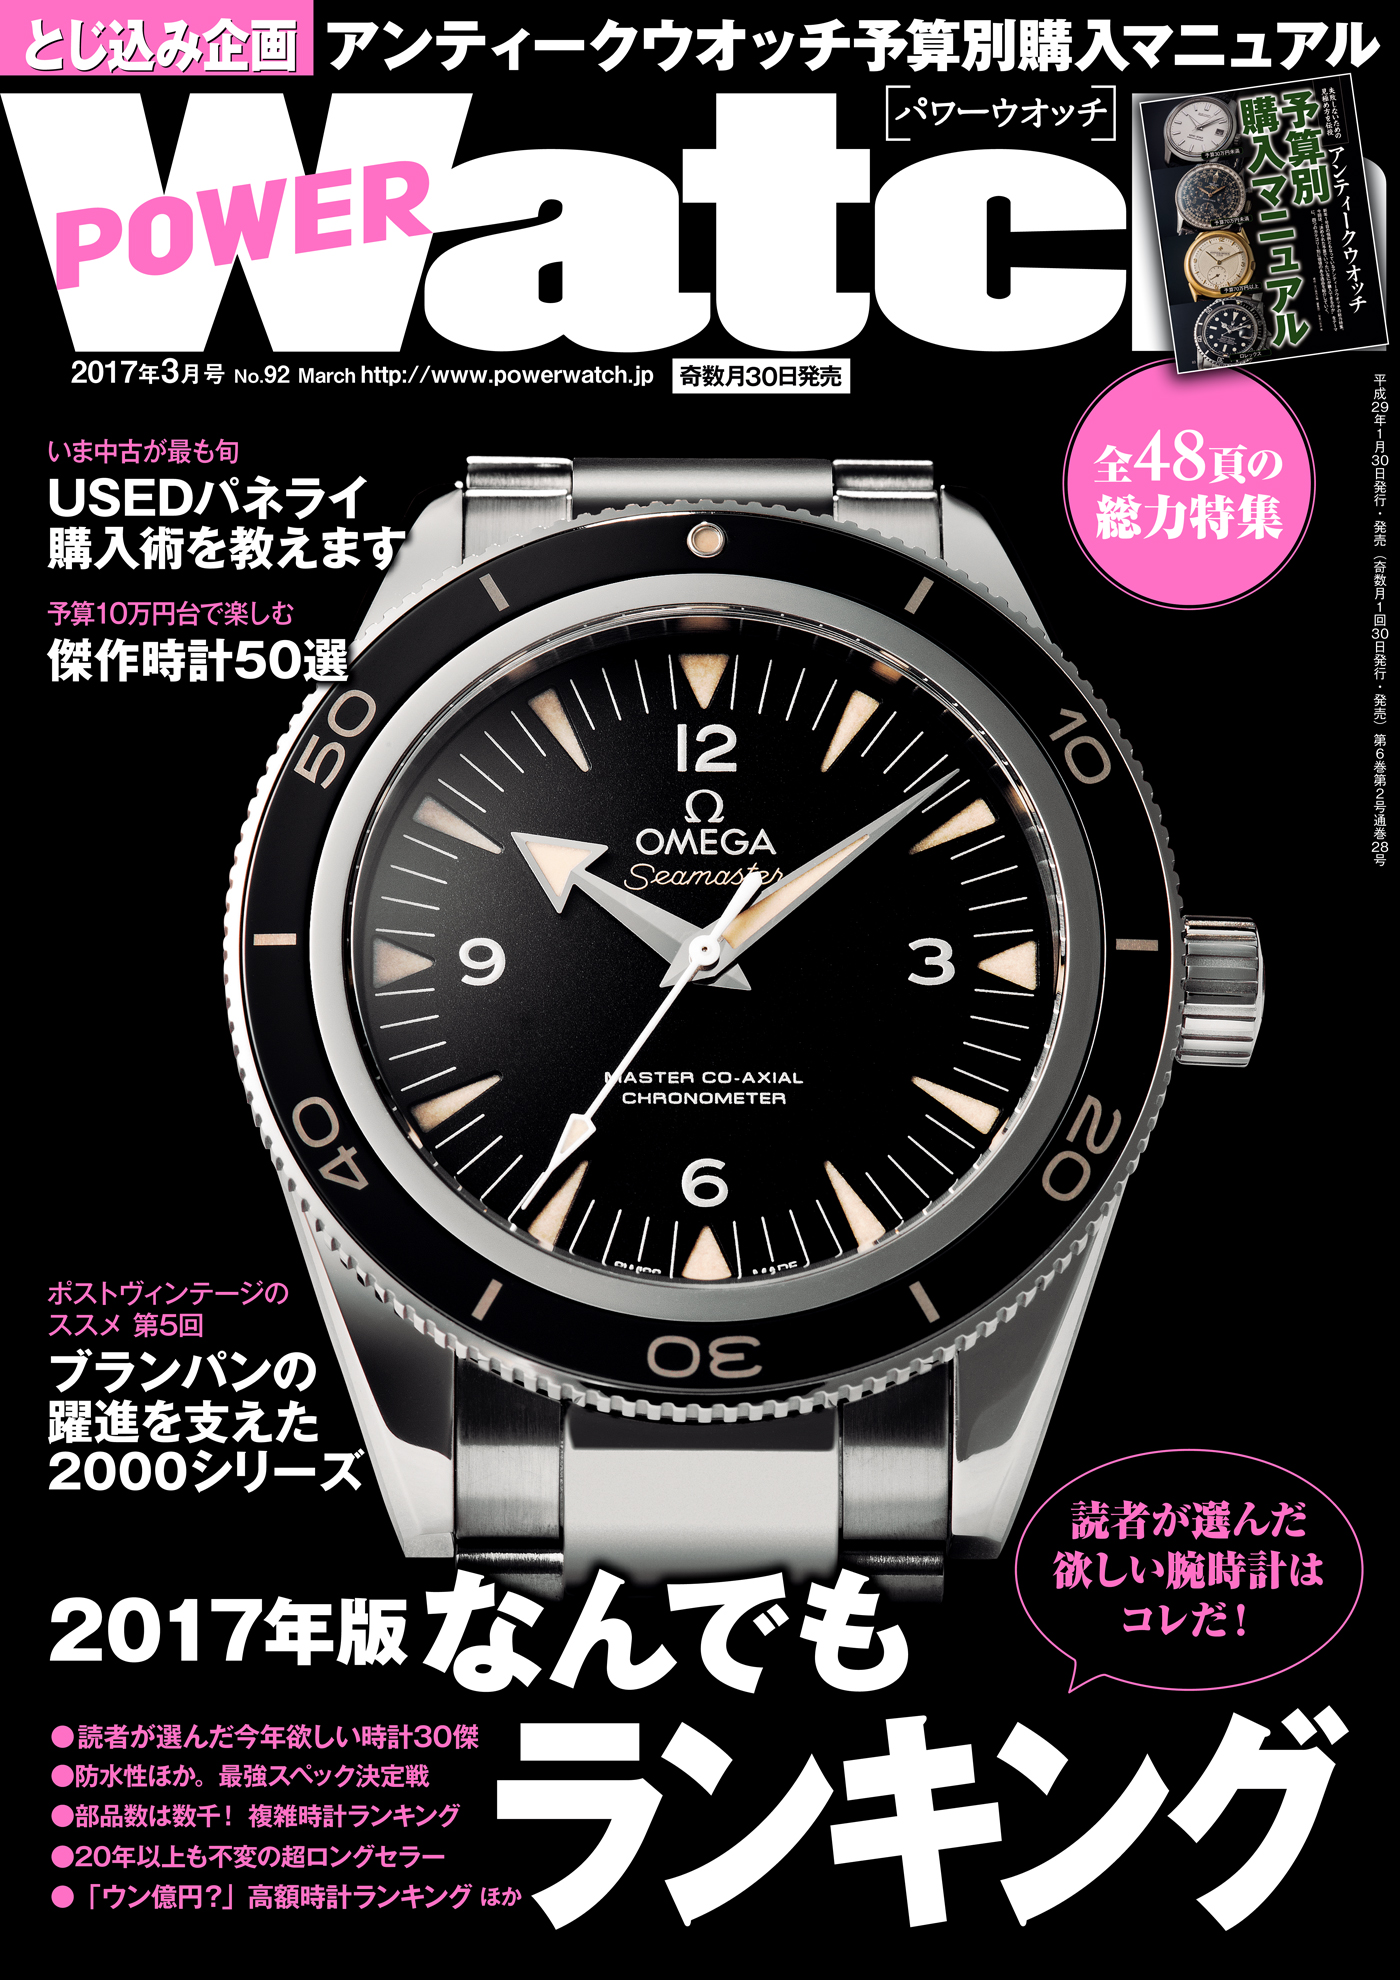 C's-Factory|電子書籍|POWER Watch No.92